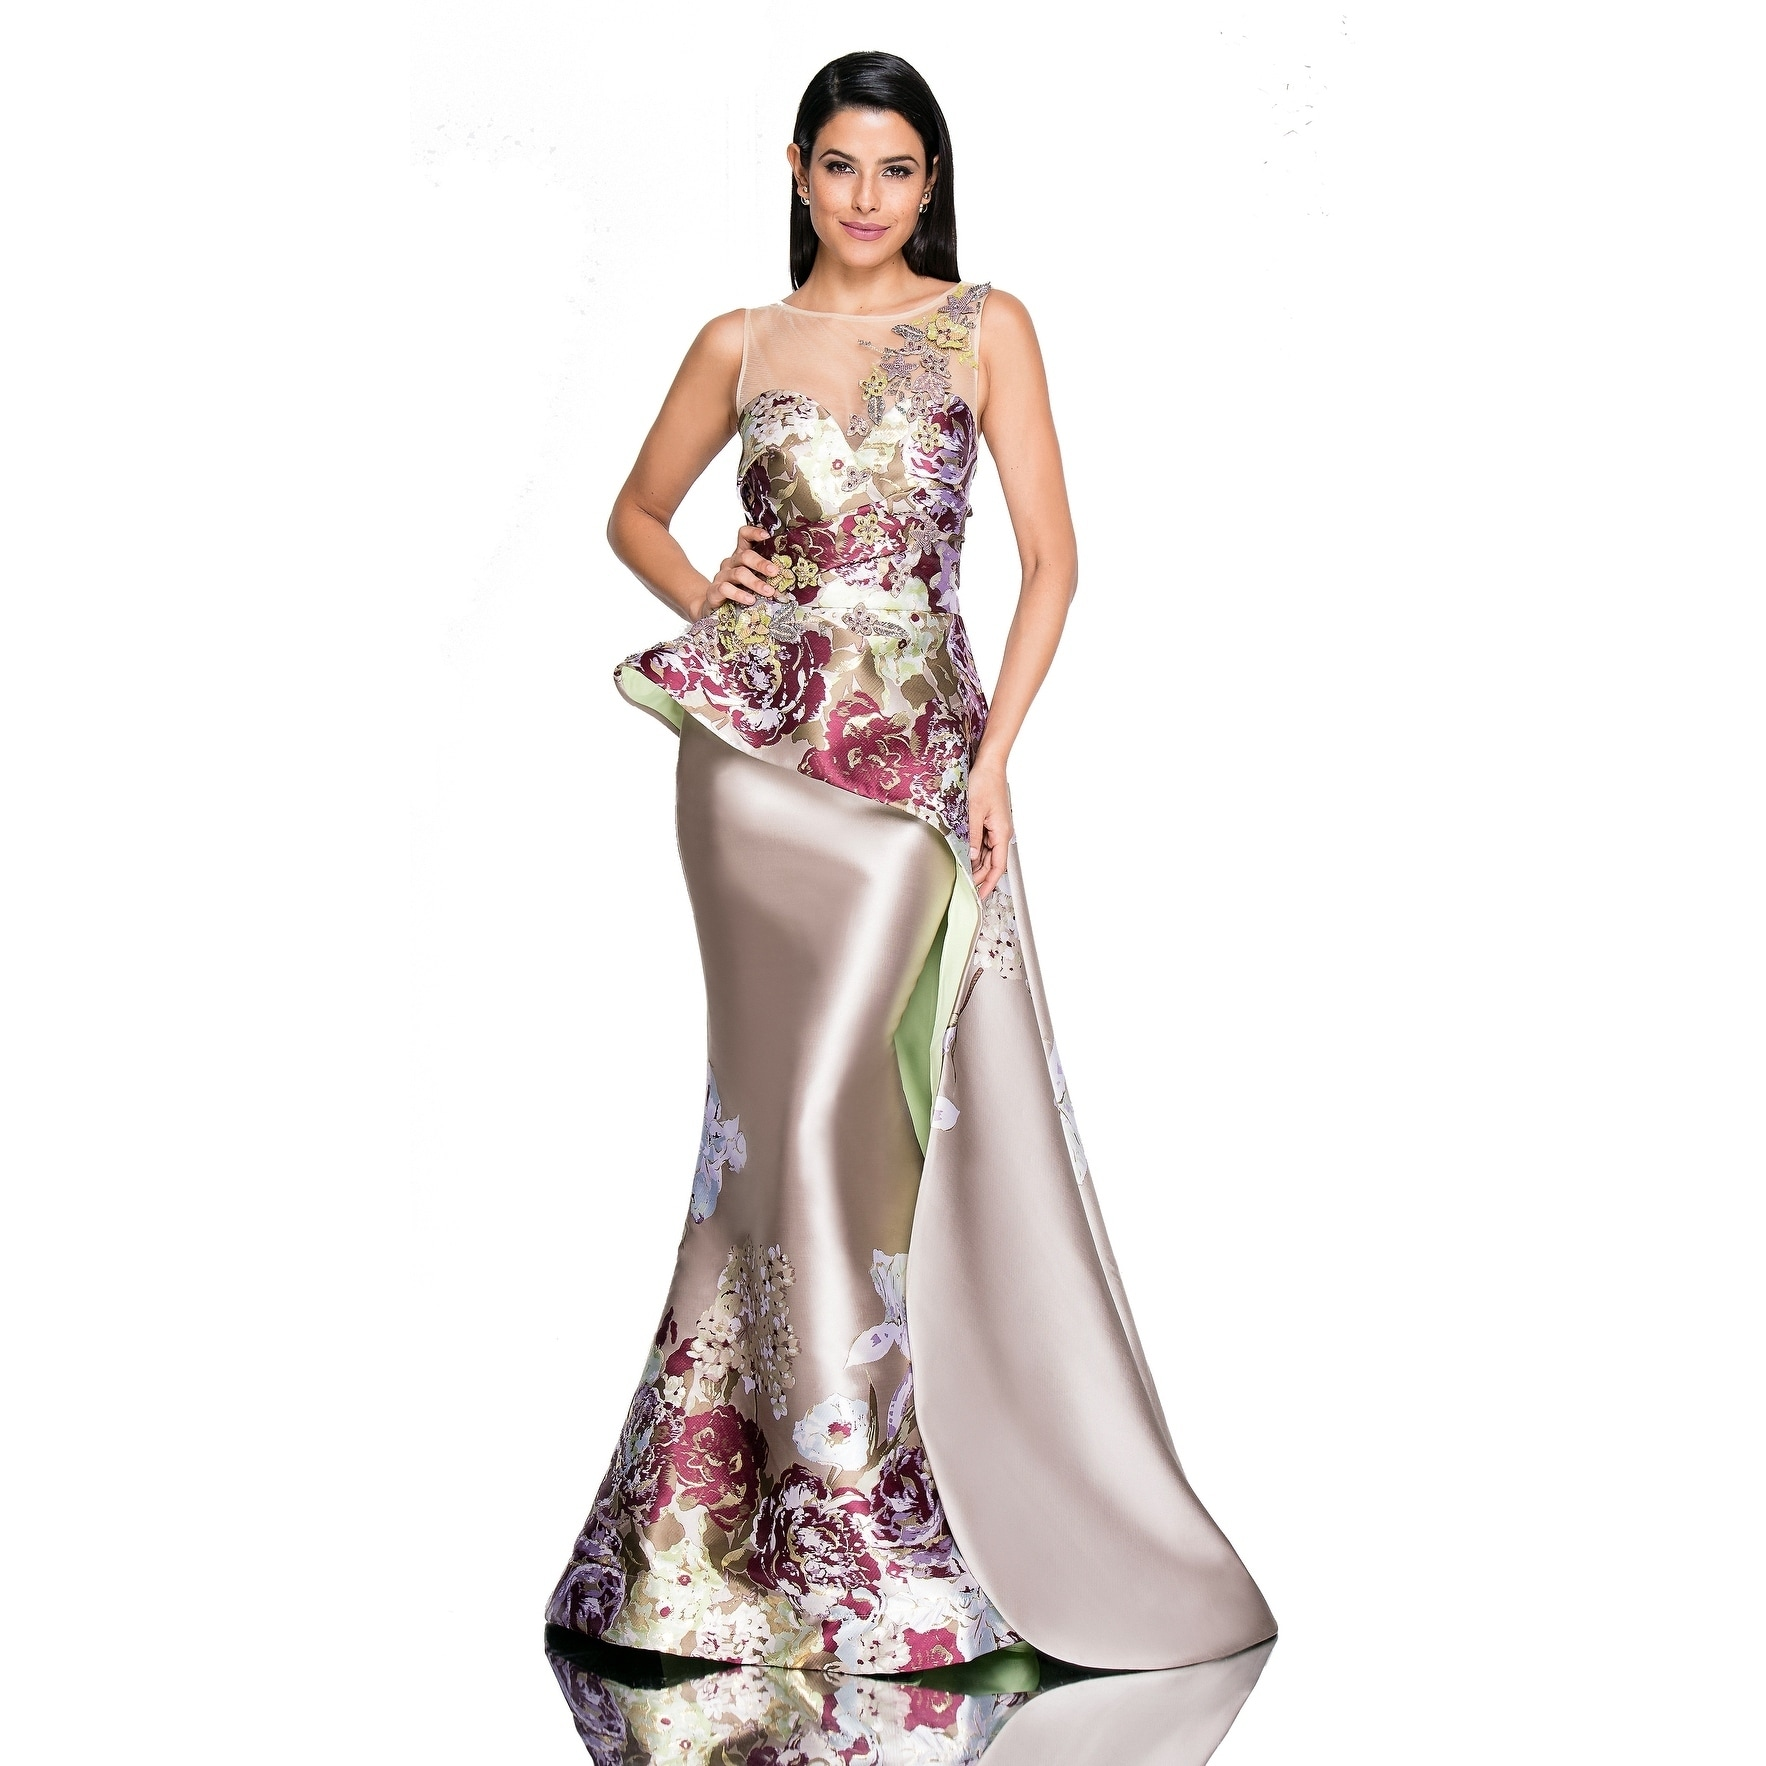 a7ccf36fab5 Shop Terani Couture Women s Gold Illusion Sweetheart Neck Floral Bodice  Long Dress - Free Shipping Today - Overstock - 25575867